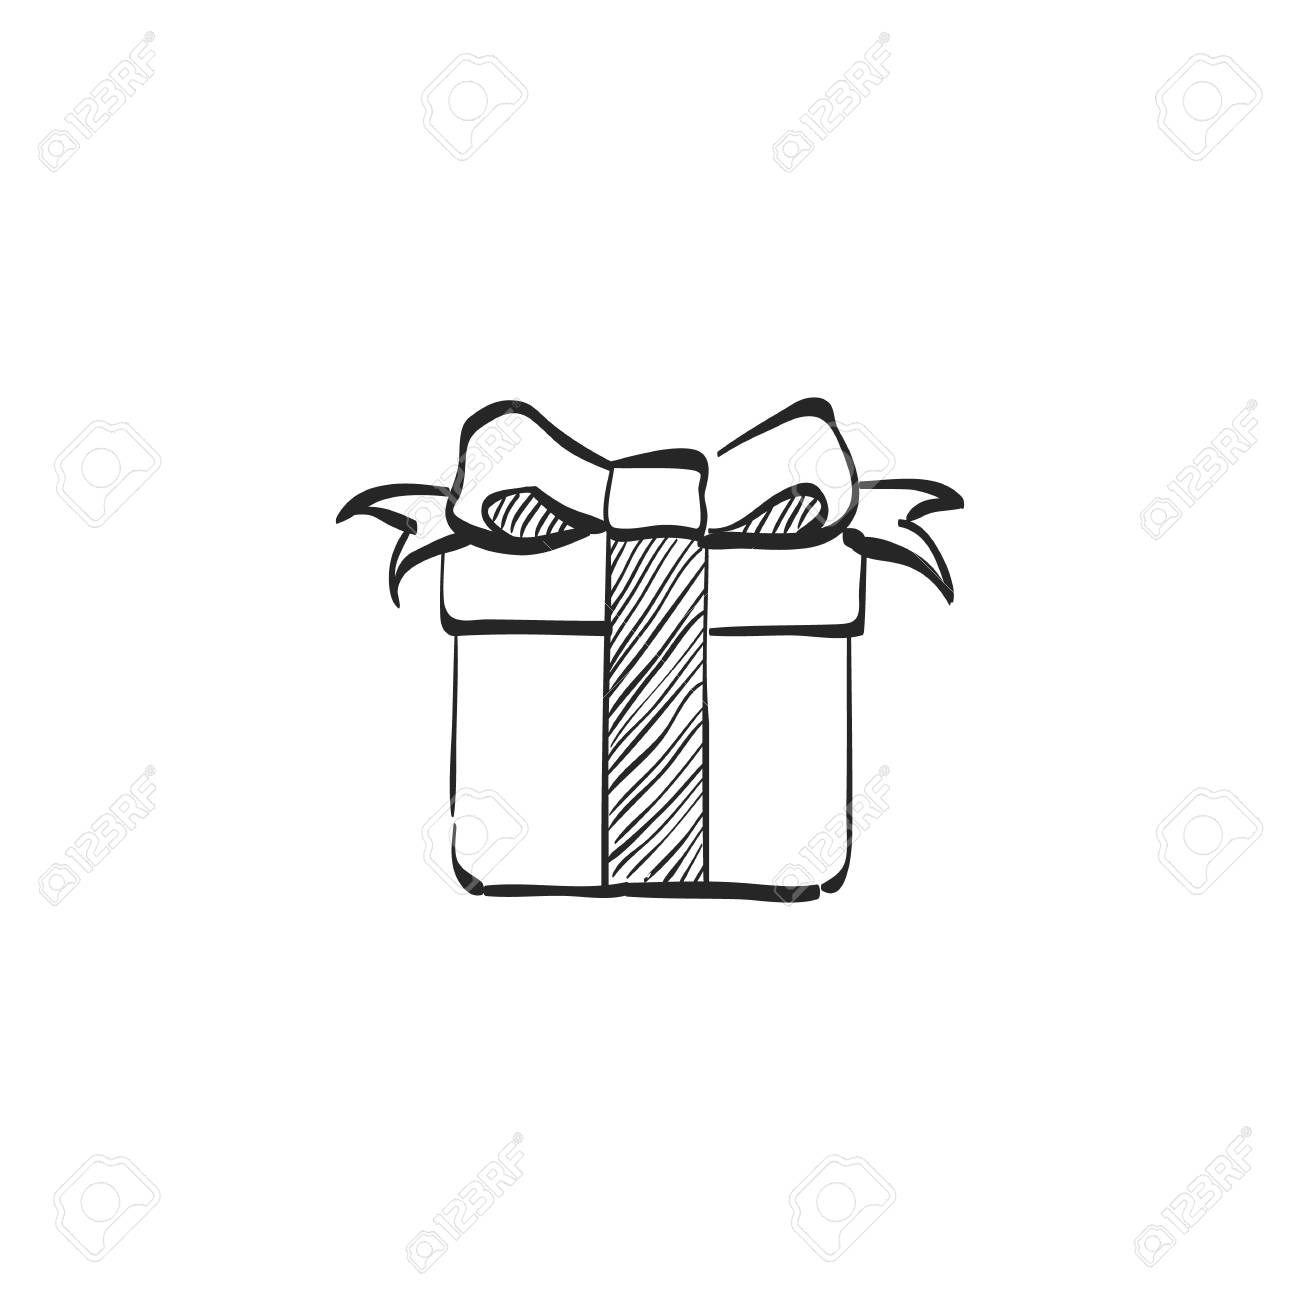 Christmas Birthday Image.Gift Box Icon In Doodle Sketch Lines Holiday Christmas Birthday